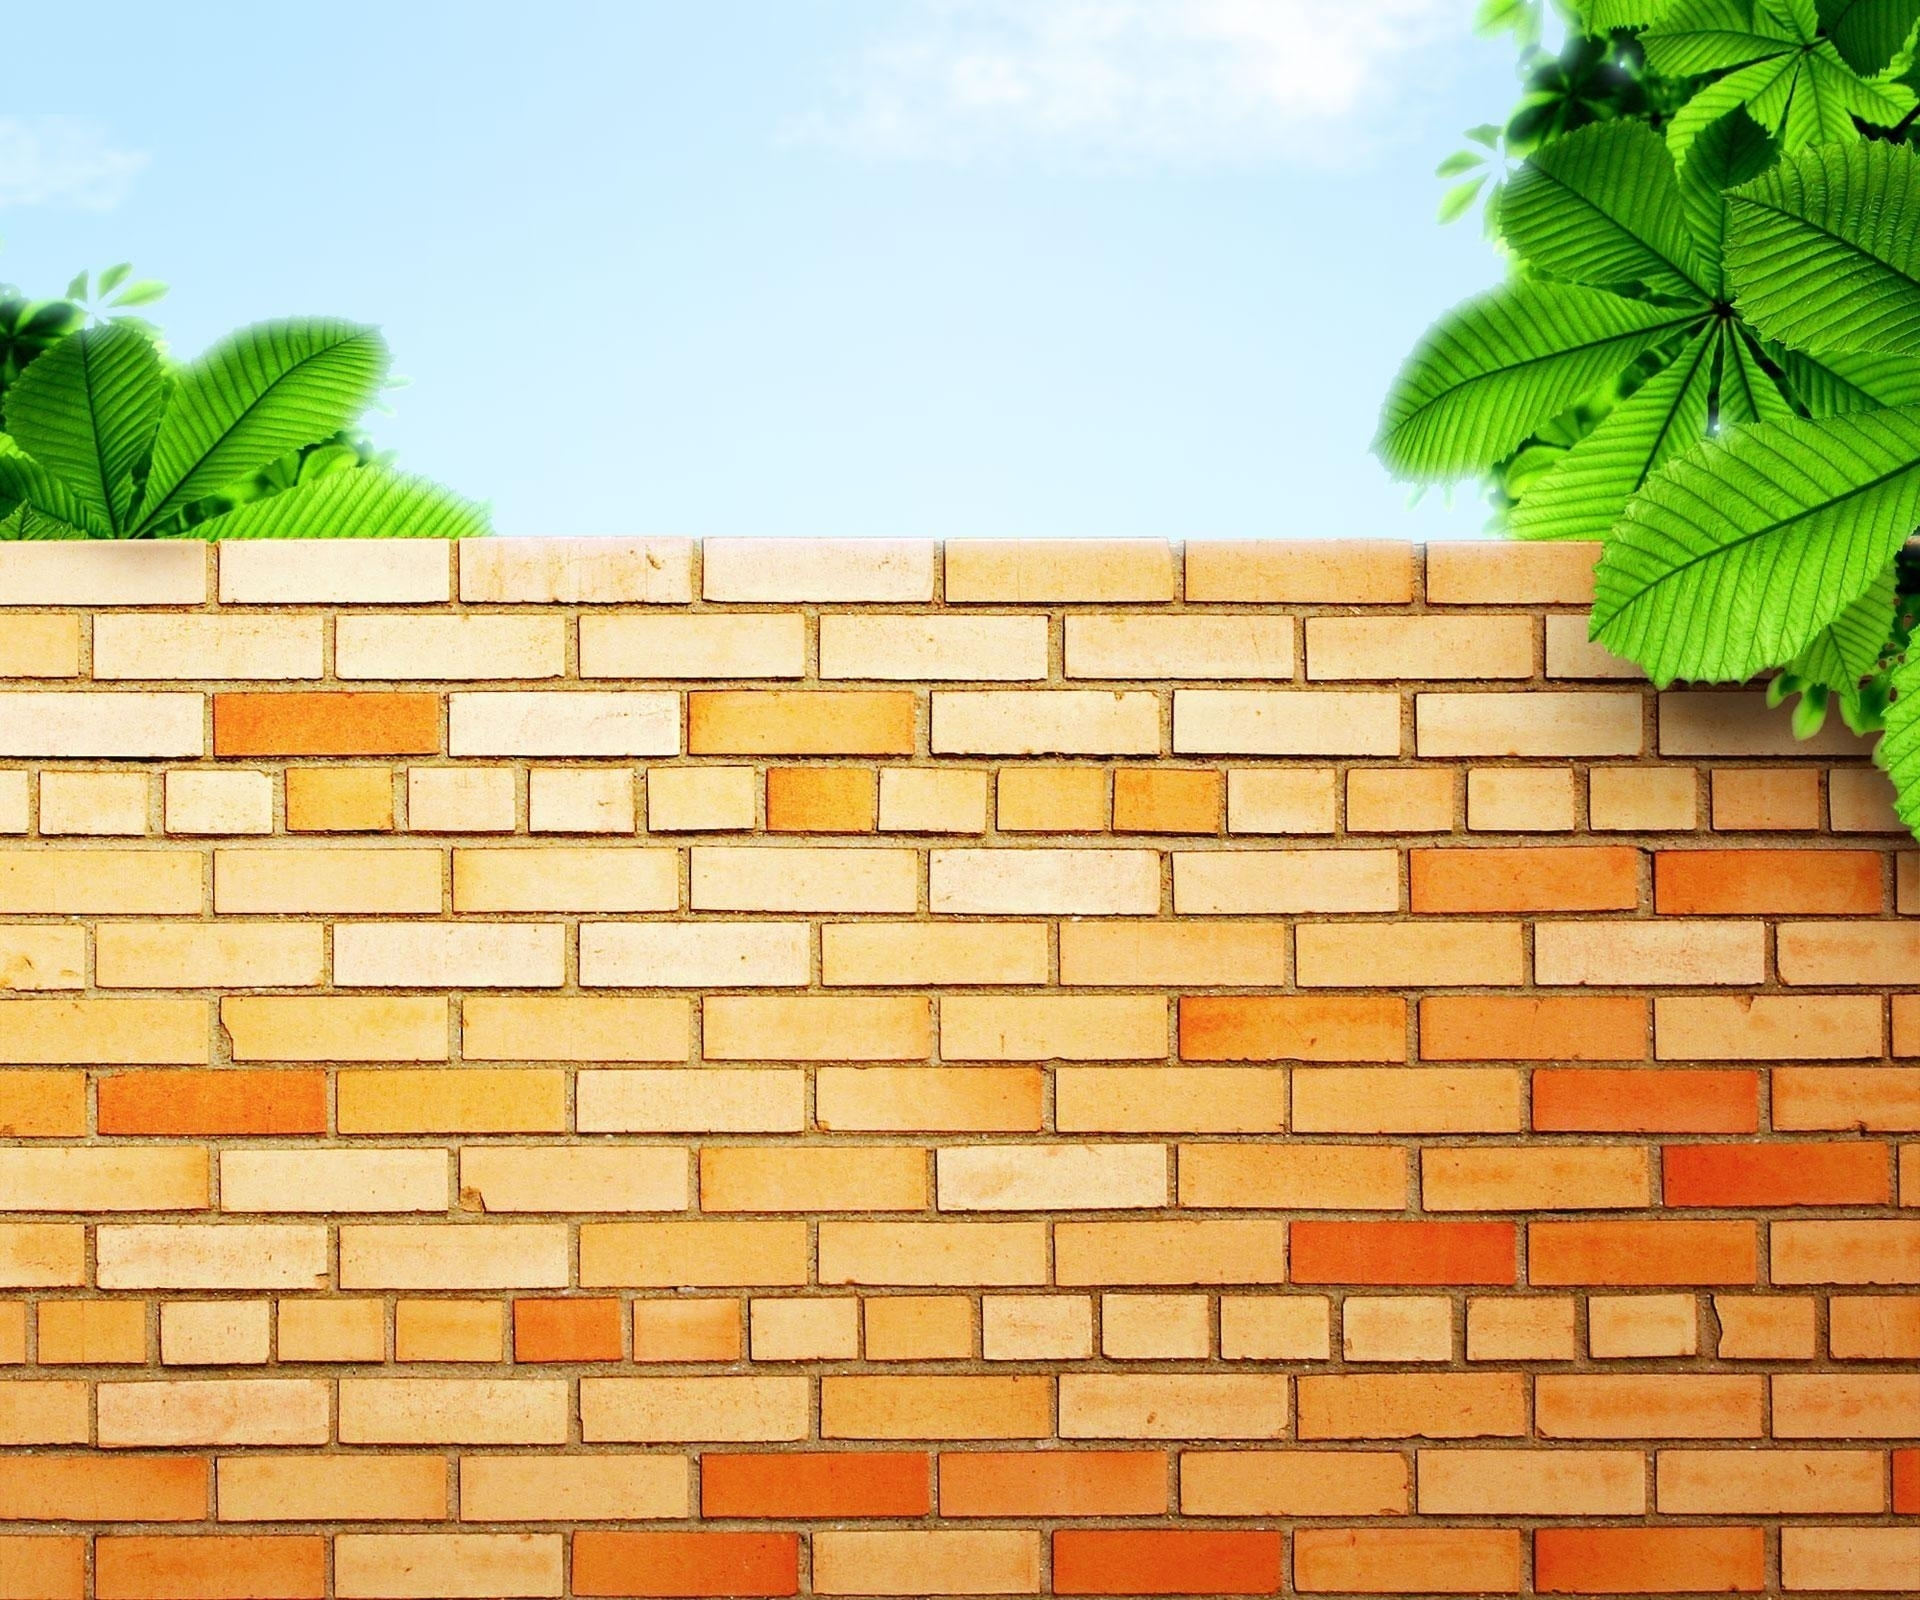 Picture on wall clipart svg transparent download Brick wall background clipart Craftsman Compact » Clipart ... svg transparent download